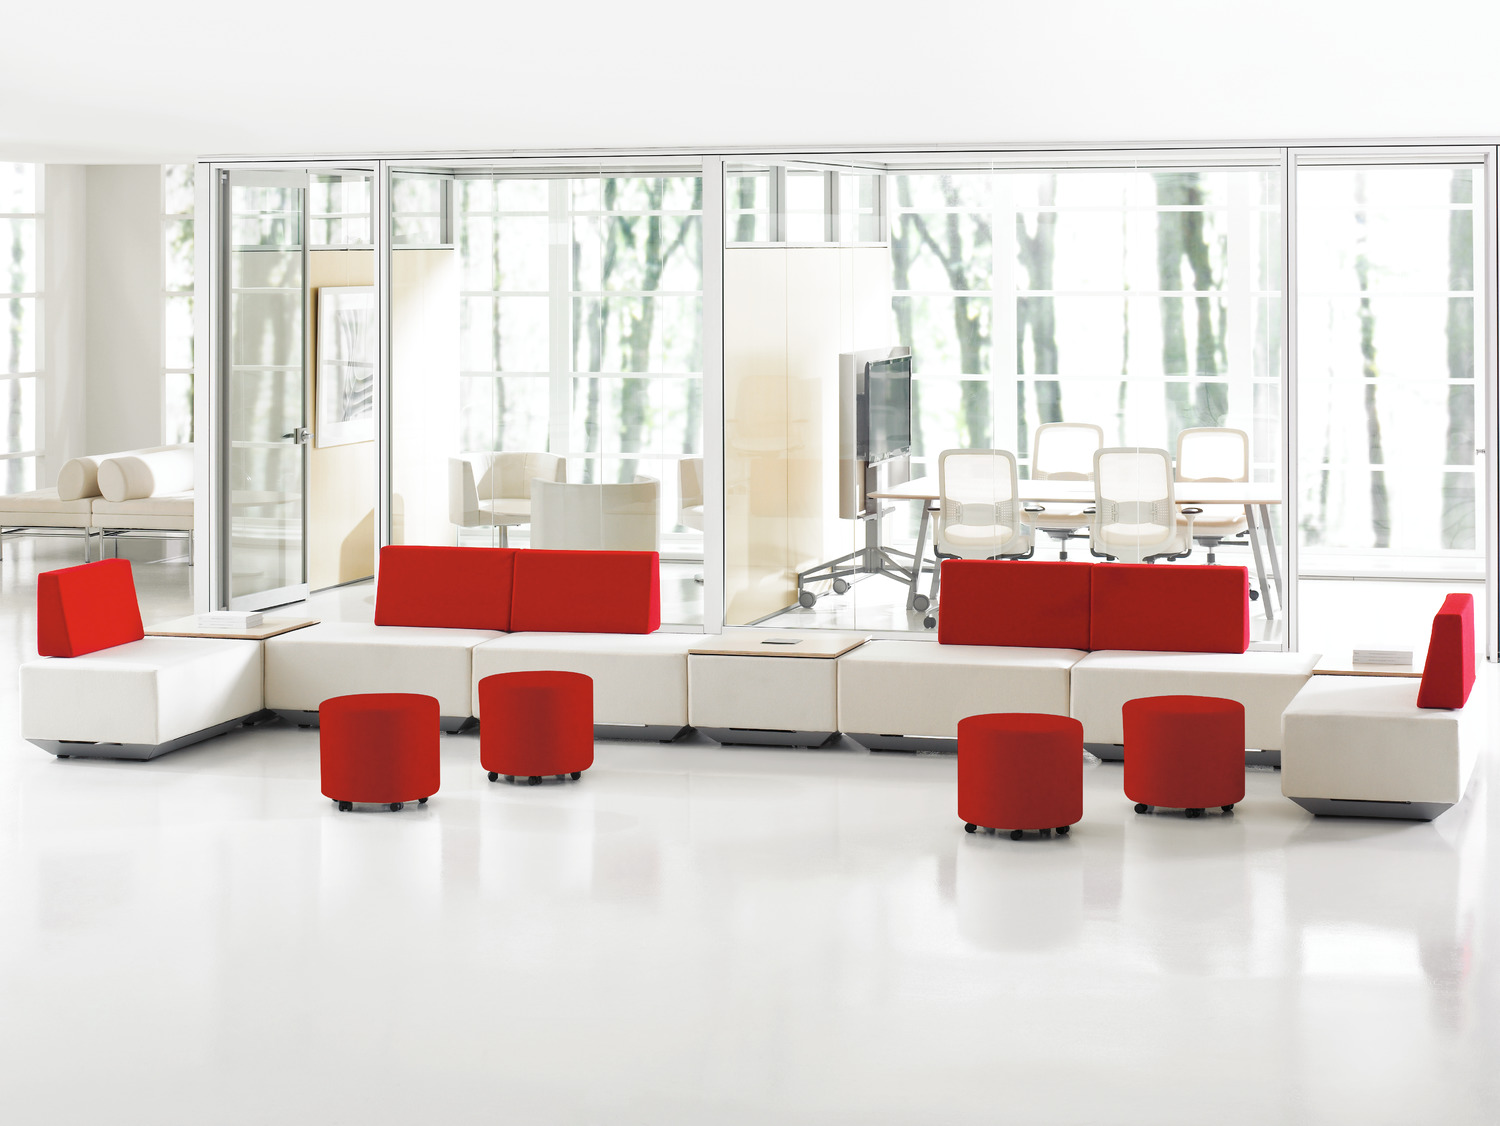 Teknion dna Lounge Seating in Red and White